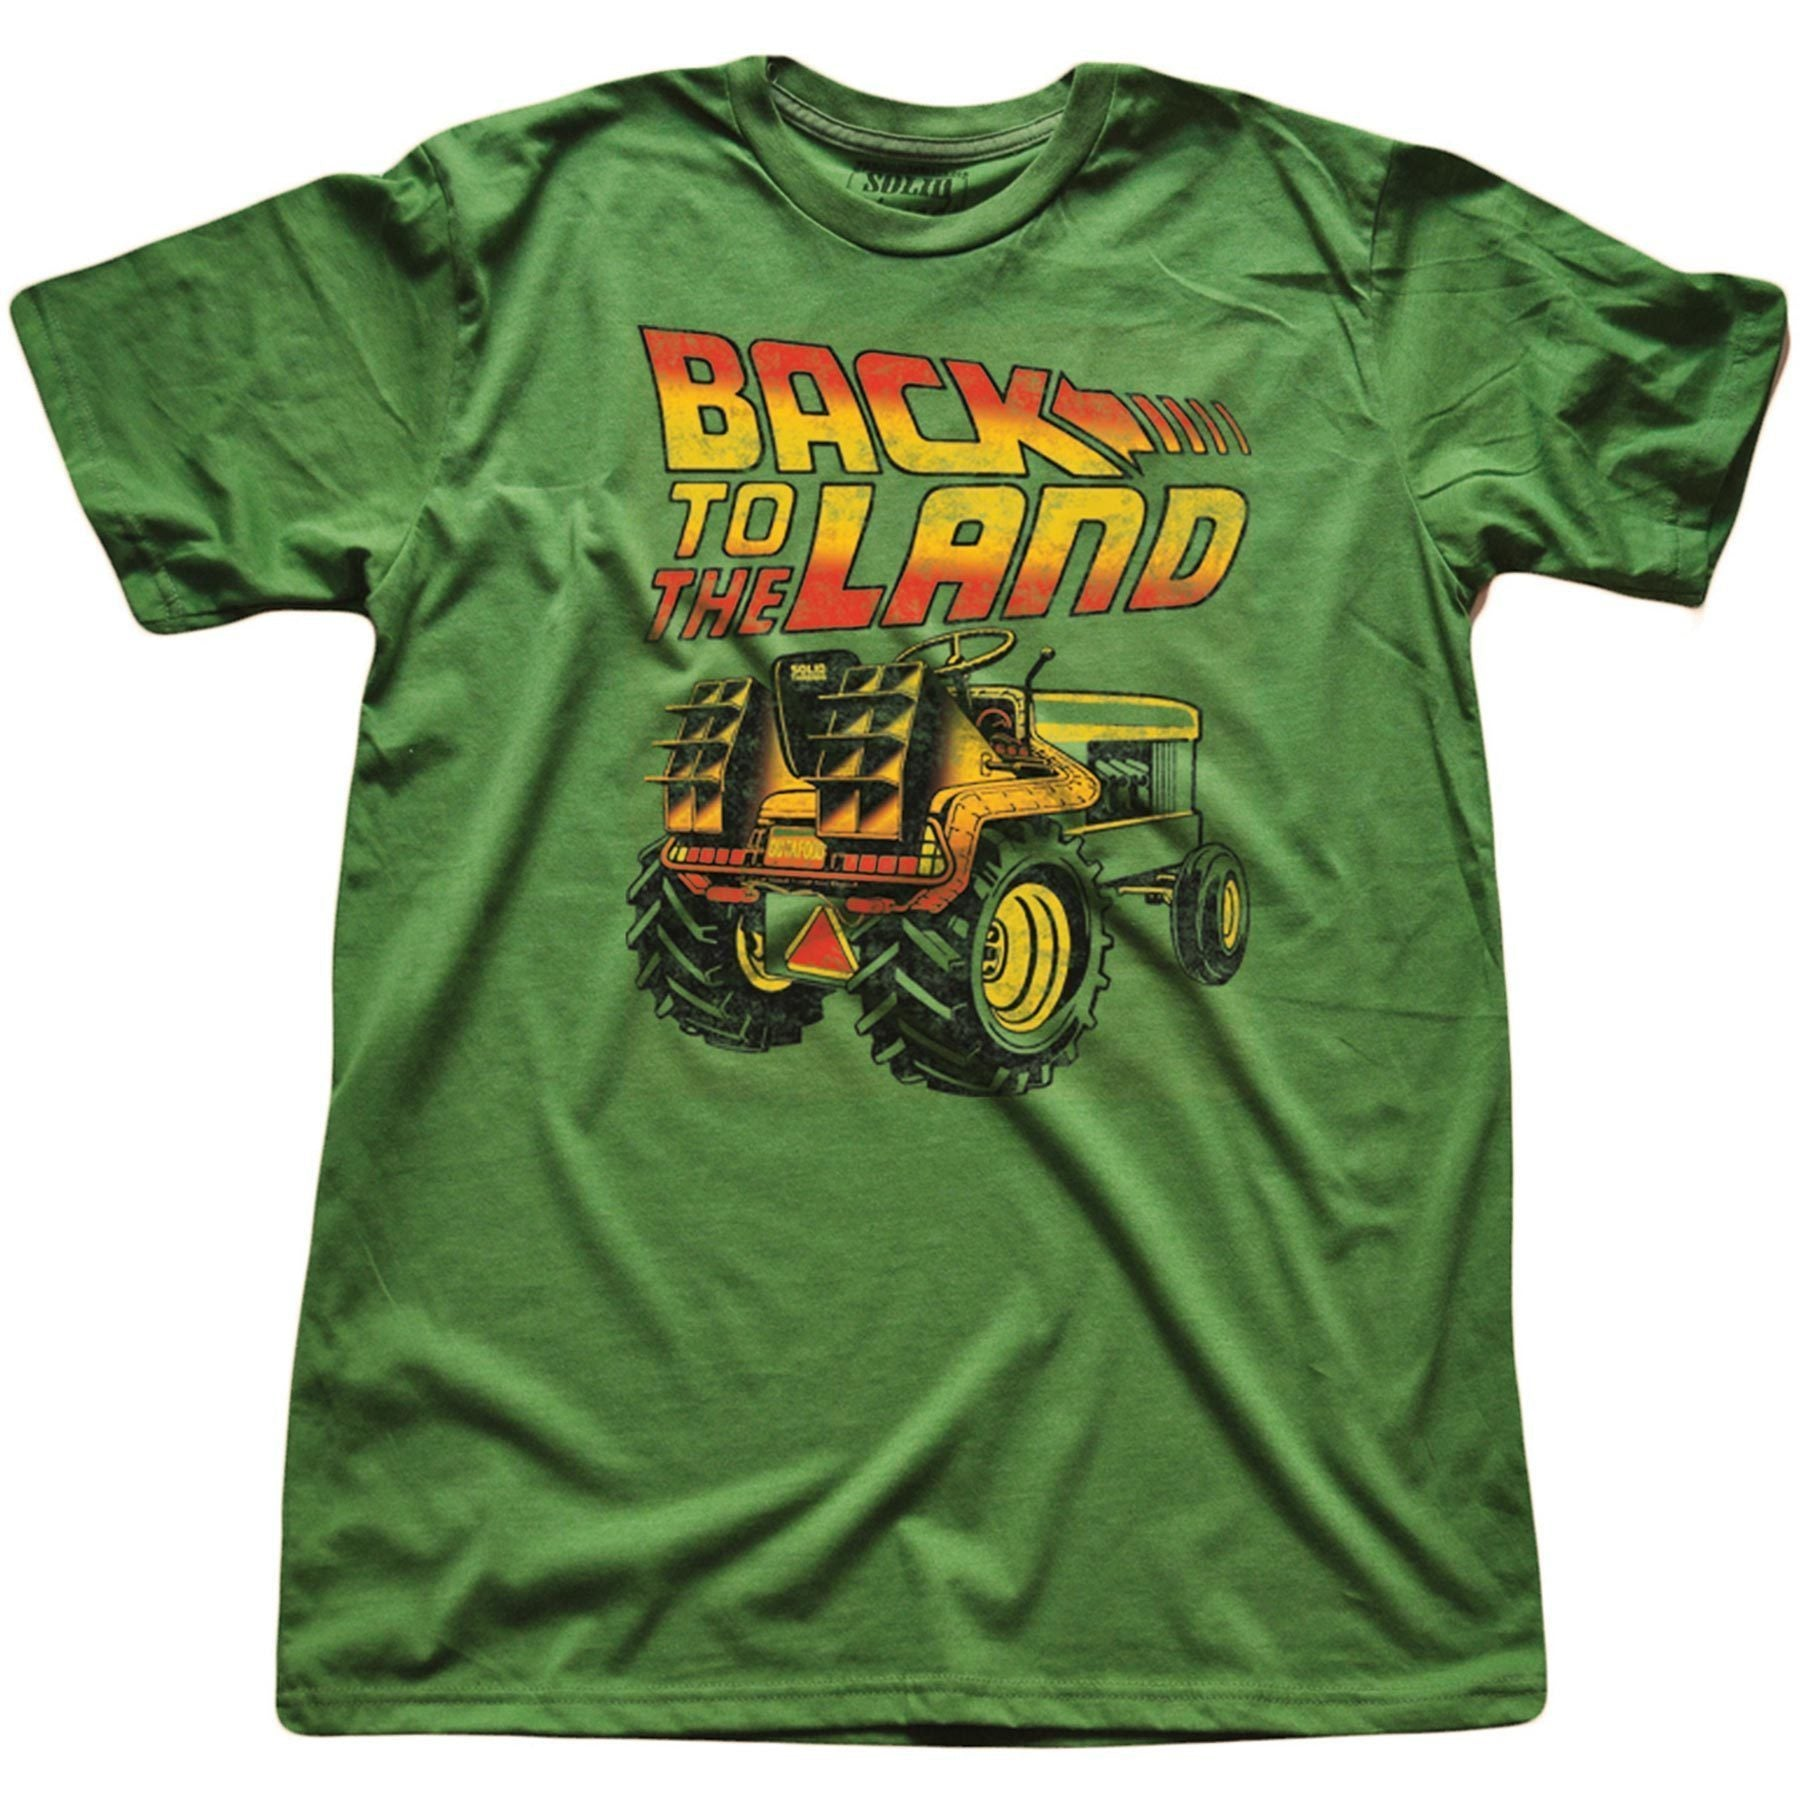 Back To The Land Vintage T-shirt | SOLID THREADS